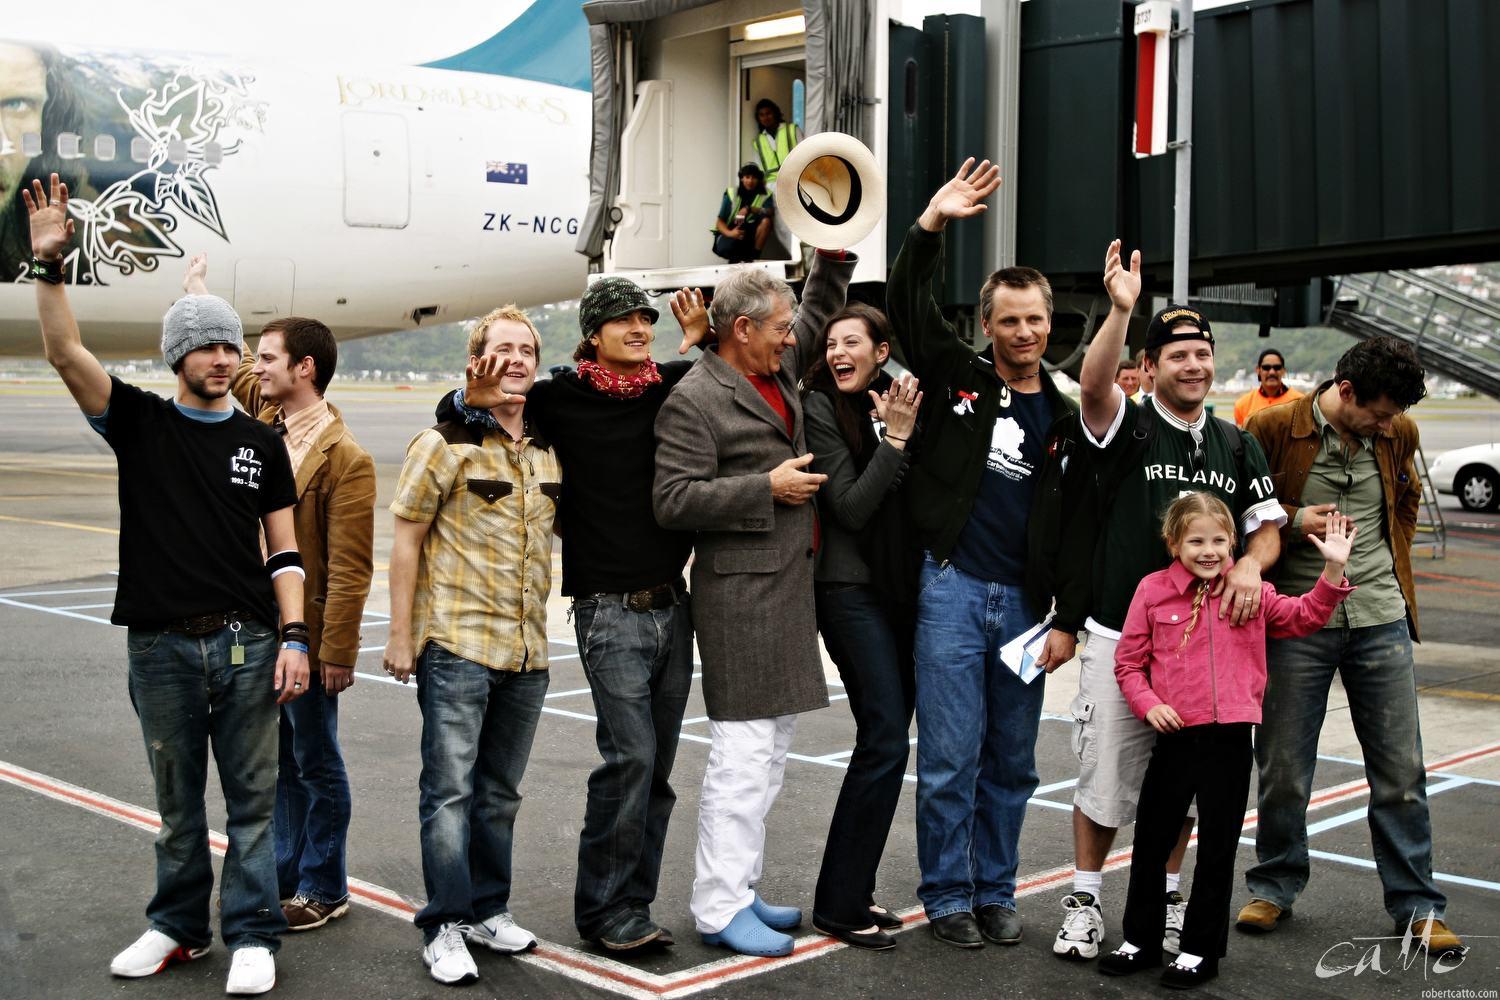 The cast of The Lord Of The Rings: The Return Of The King depart Wellington Airport - Dominic Monaghan, Elijah Wood, Billy Boyd, Orlando Bloom, Sir Ian McKellen, Liv Tyler, Viggo Mortensen, Sean Astin (and his daughter) and Andy Serkis wait to board a custom-painted Air New Zealand plane.